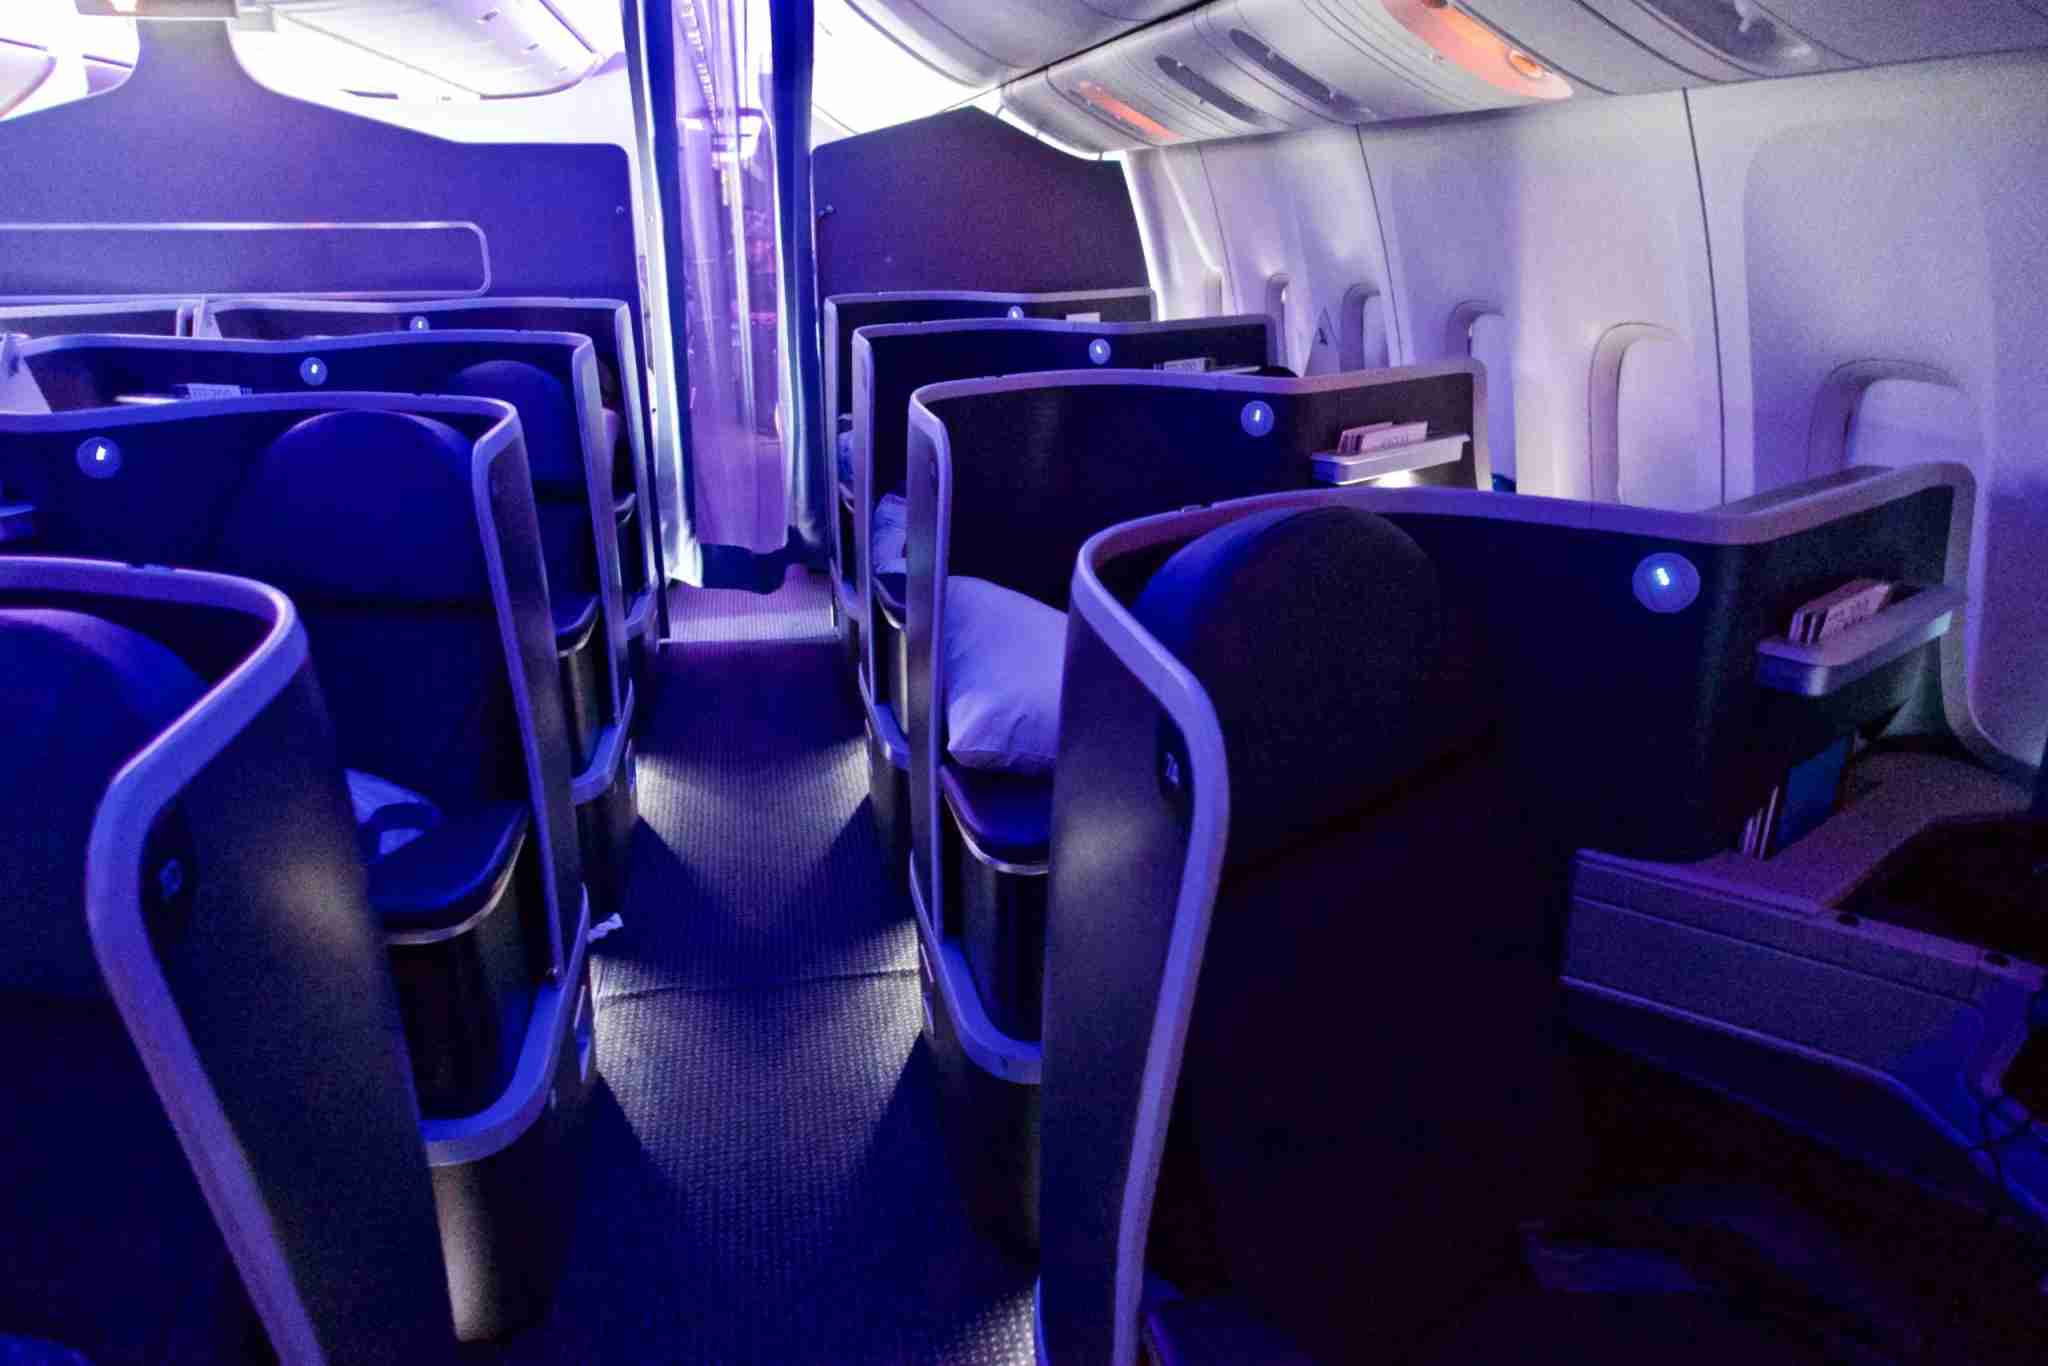 The 2nd cabin of the business class section during the flight on the American Airlines B777-200. Photo by Christian Kramer / The Points Guy